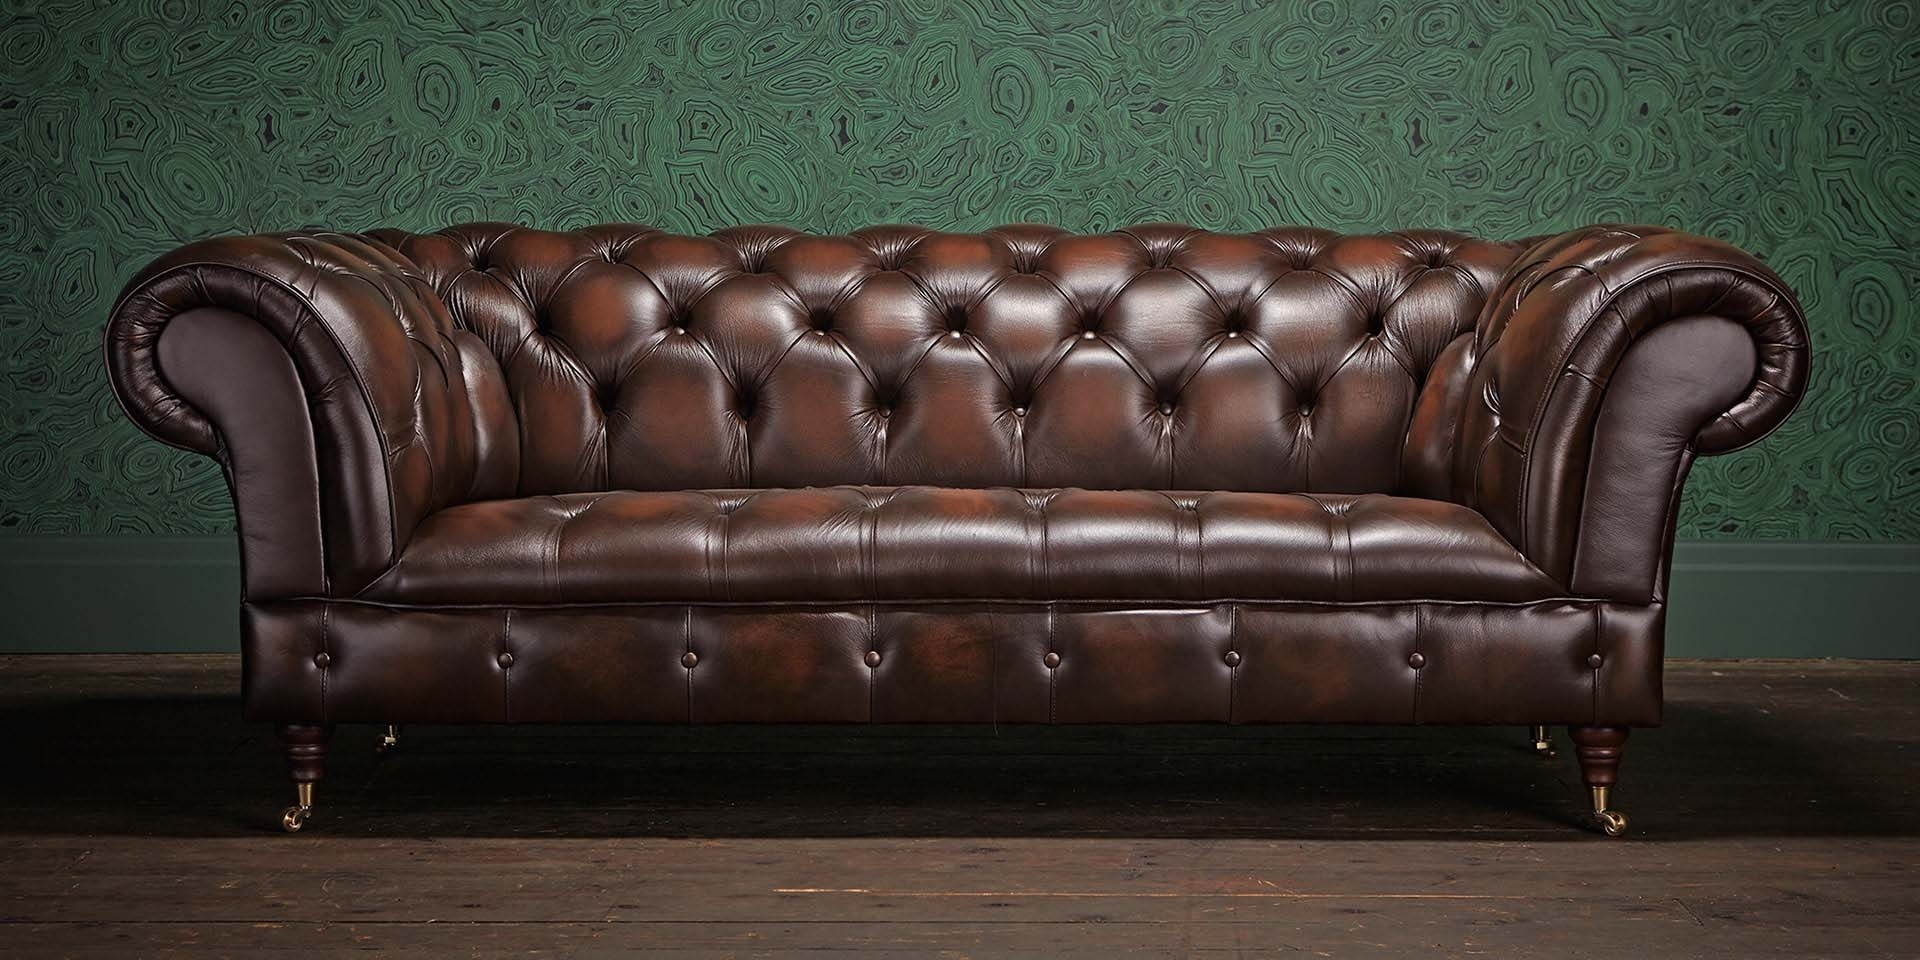 4 Vital Things To Look For In A Leather Chesterfield Sofa – Blogbeen Throughout Newest Chesterfield Sofas (View 1 of 20)